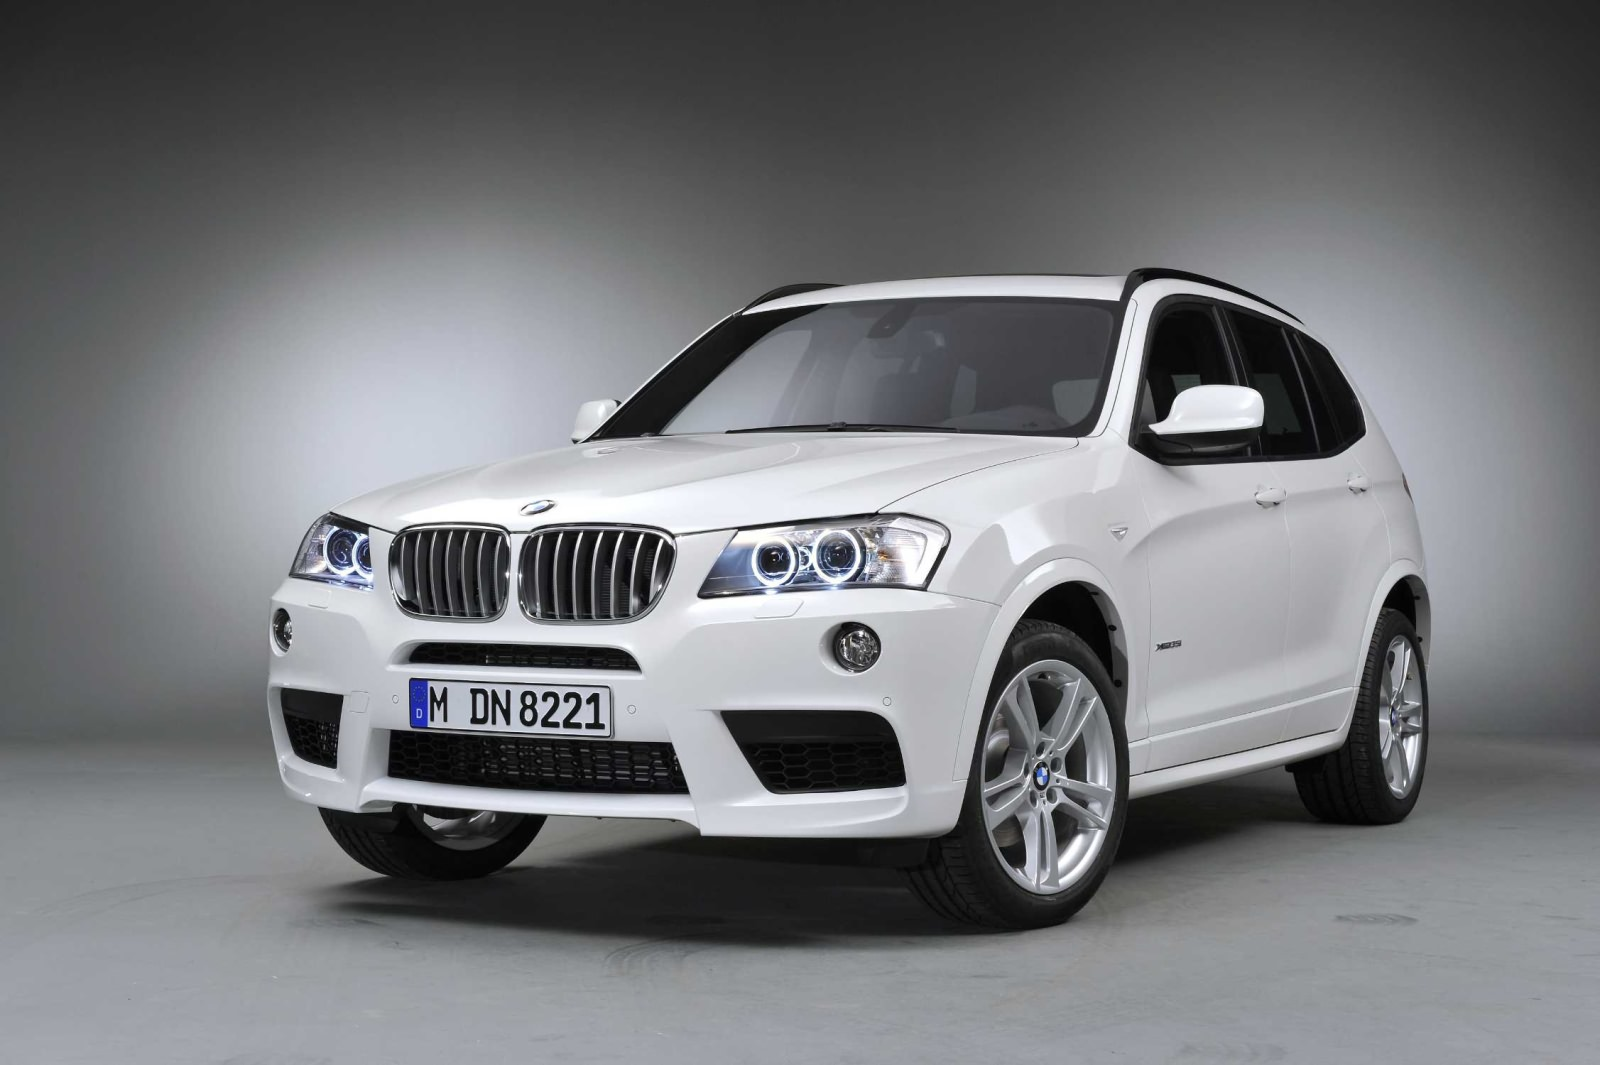 modellbeschreibung ber den bmw x3 f25. Black Bedroom Furniture Sets. Home Design Ideas